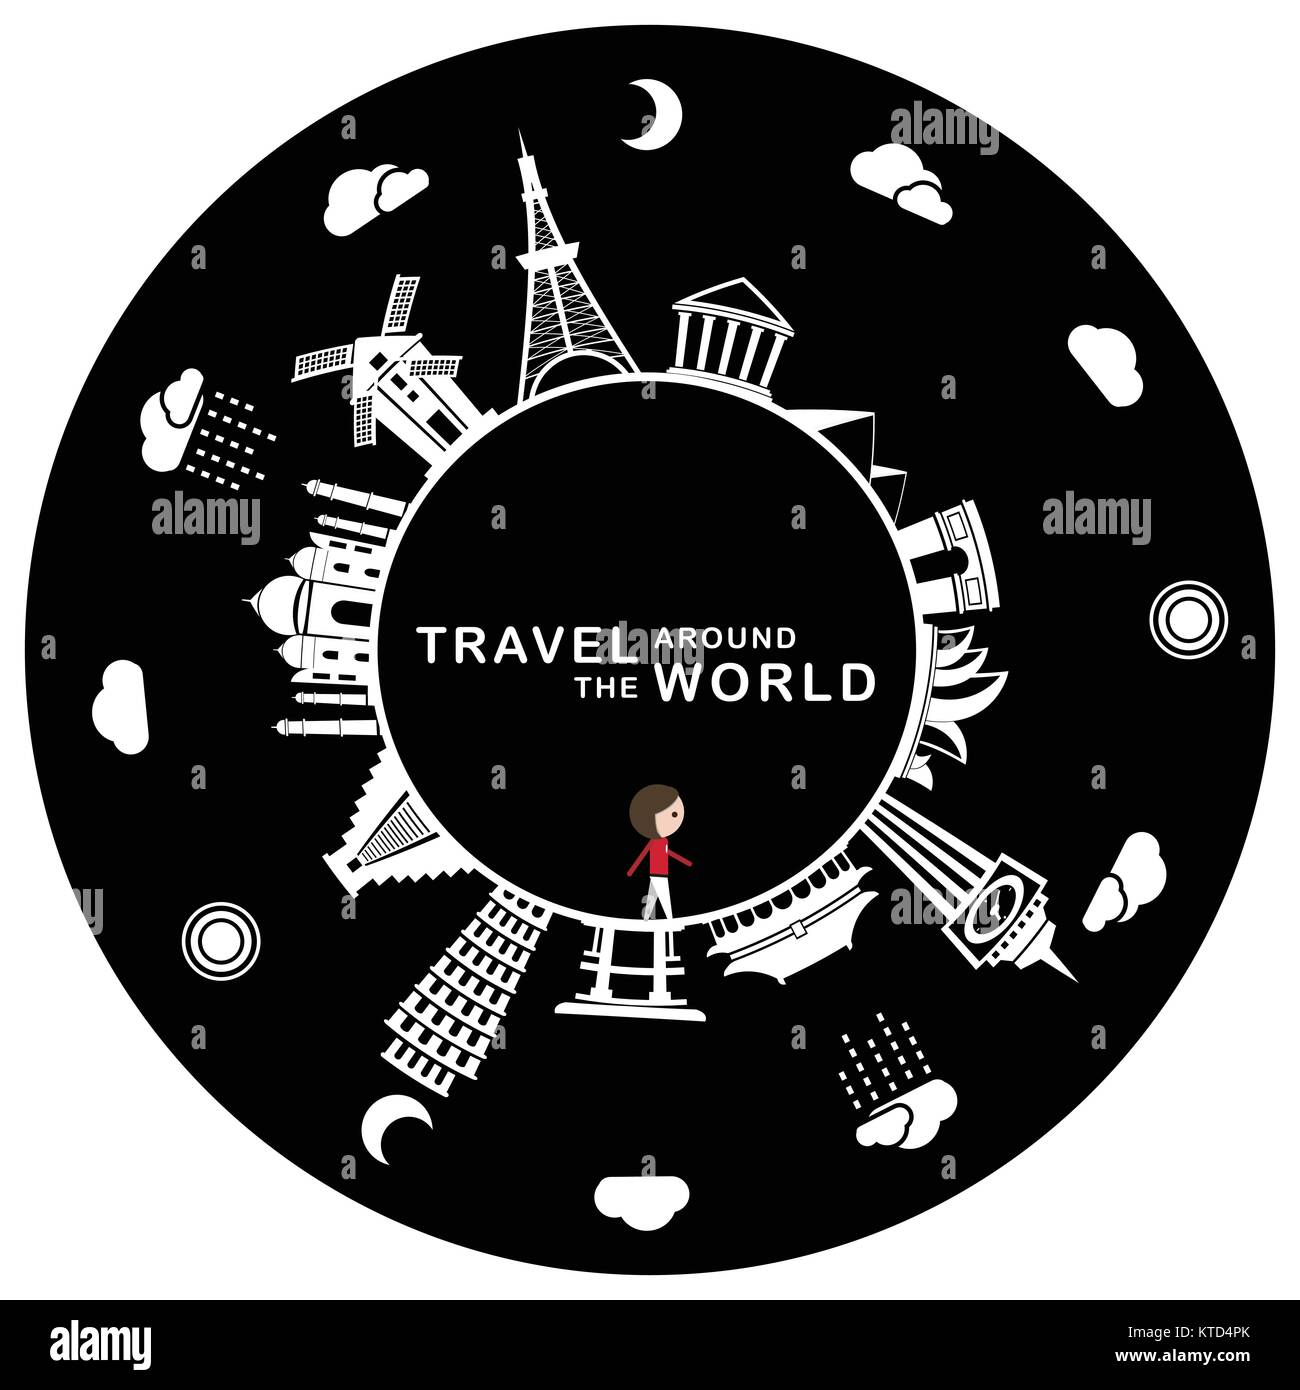 Travel around the world, including some famous landmarks. - Stock Vector